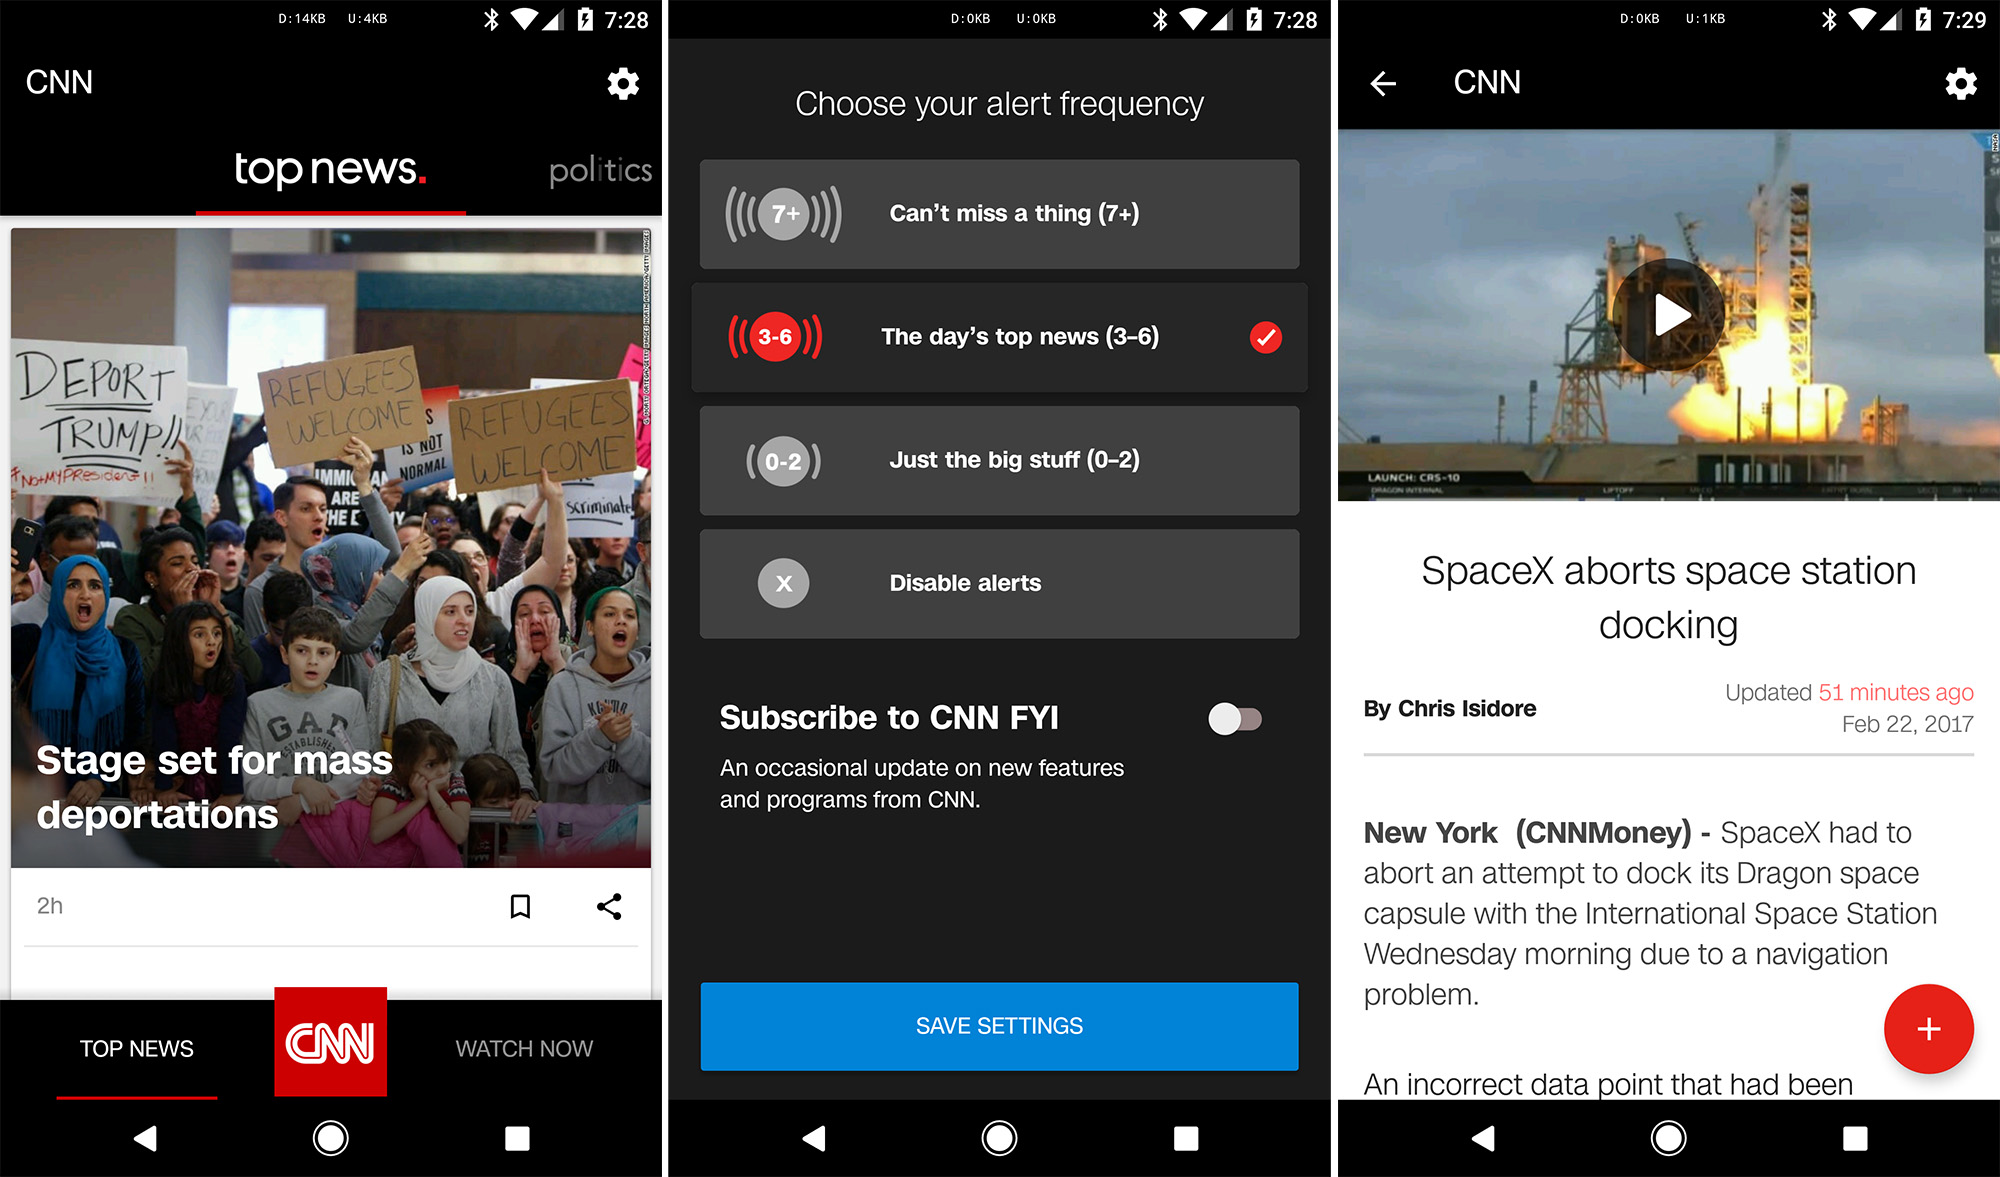 The Cnn Has Been On Android For Many Years At This Point And It S Gone Through Several Redesigns Not All Of Them Have Welcomed By Users